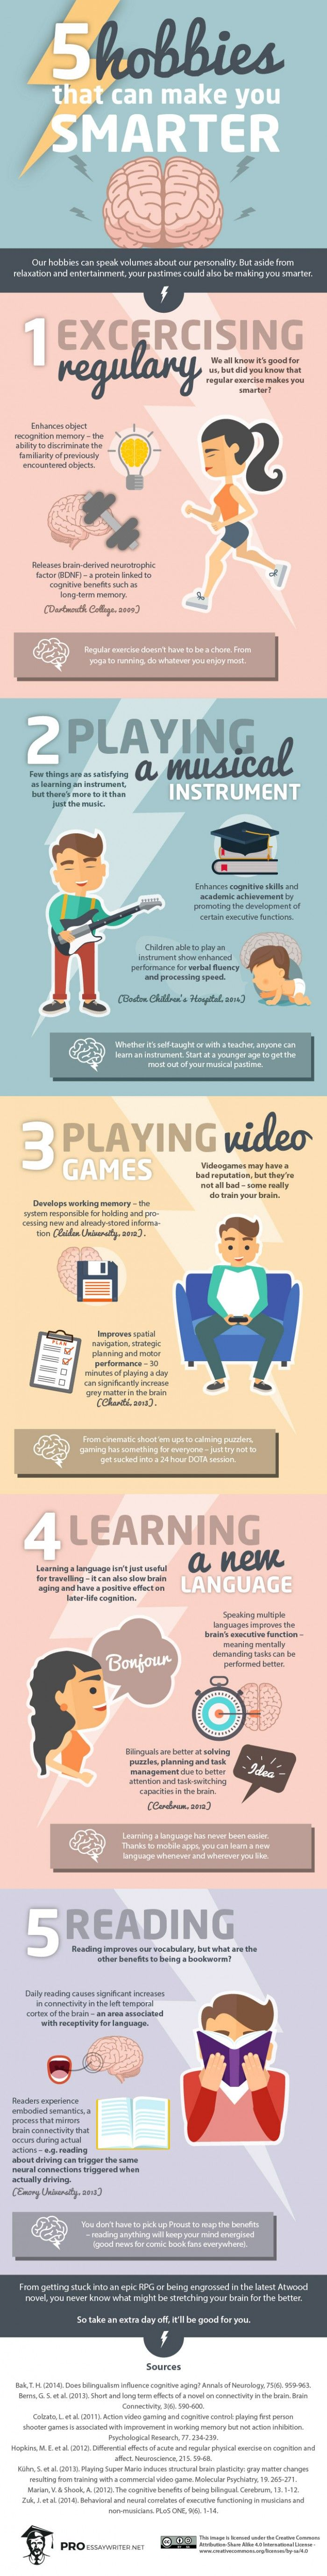 5 Hobbies That Will Make You Smarter [Infographic] | Daily Infographic